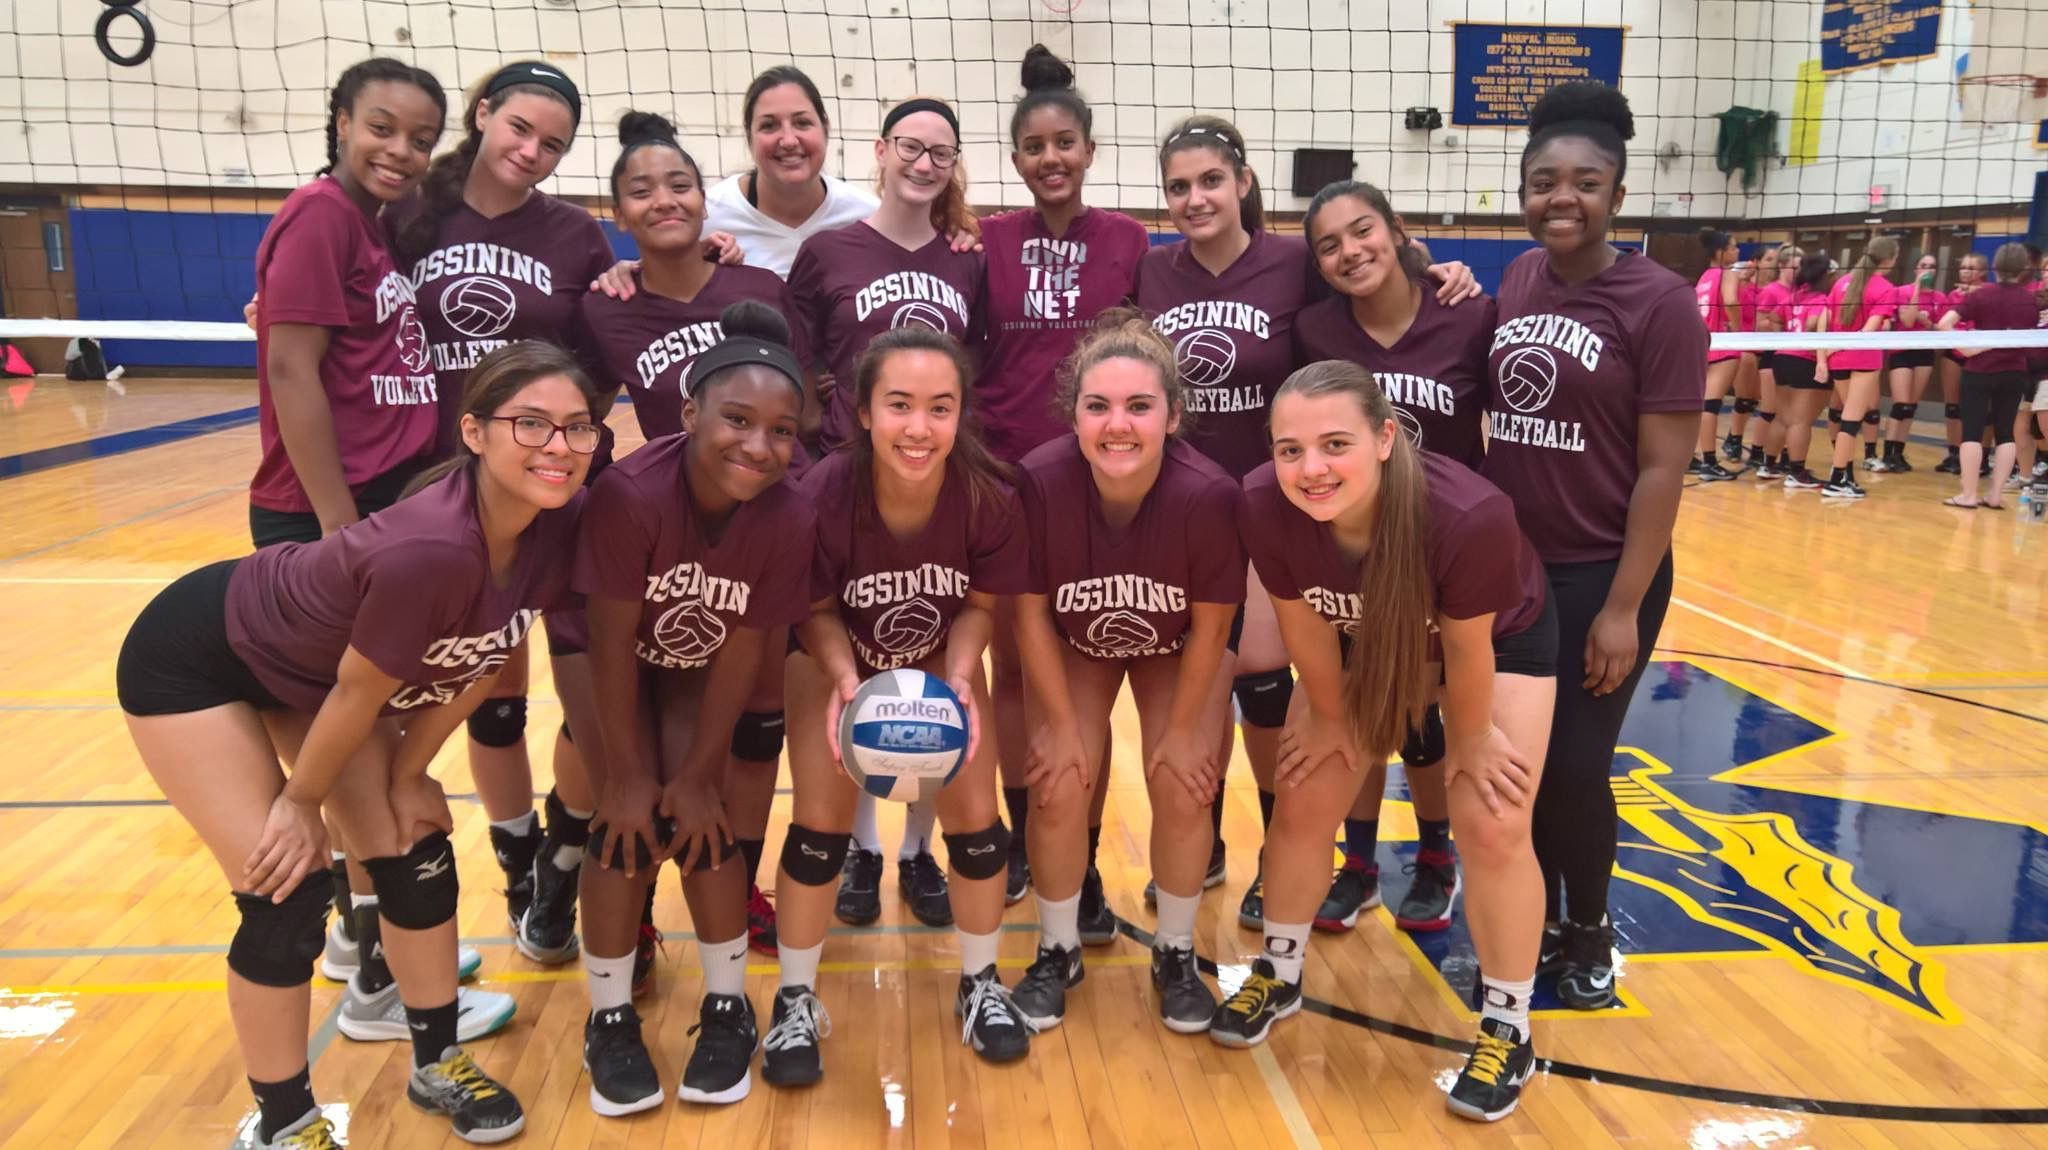 Pride Volleyball Ossining Athlete Volleyball